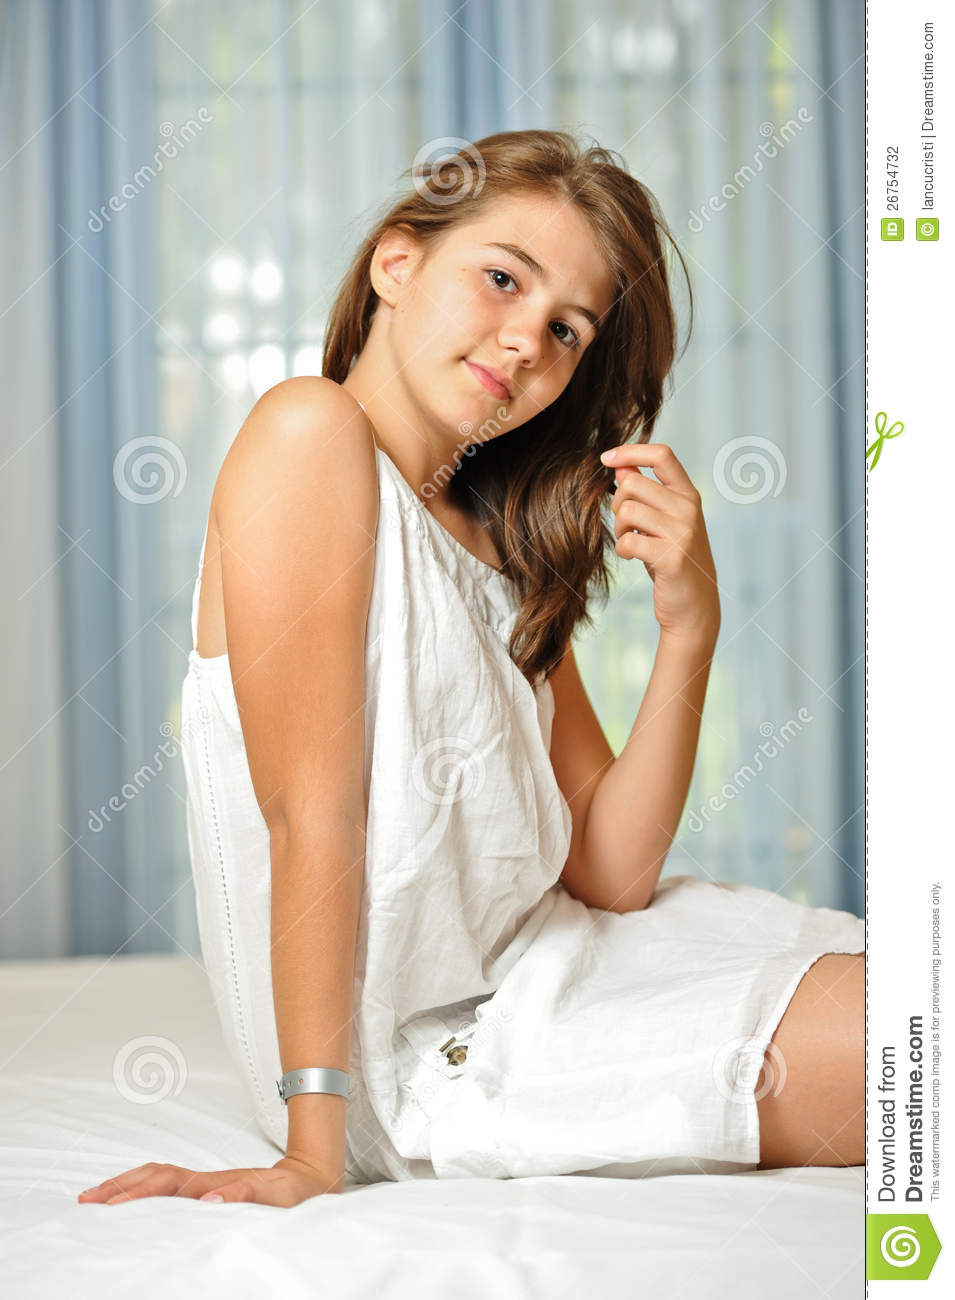 Beautiful teen girl at home in white dress stock photo for Teen home pic